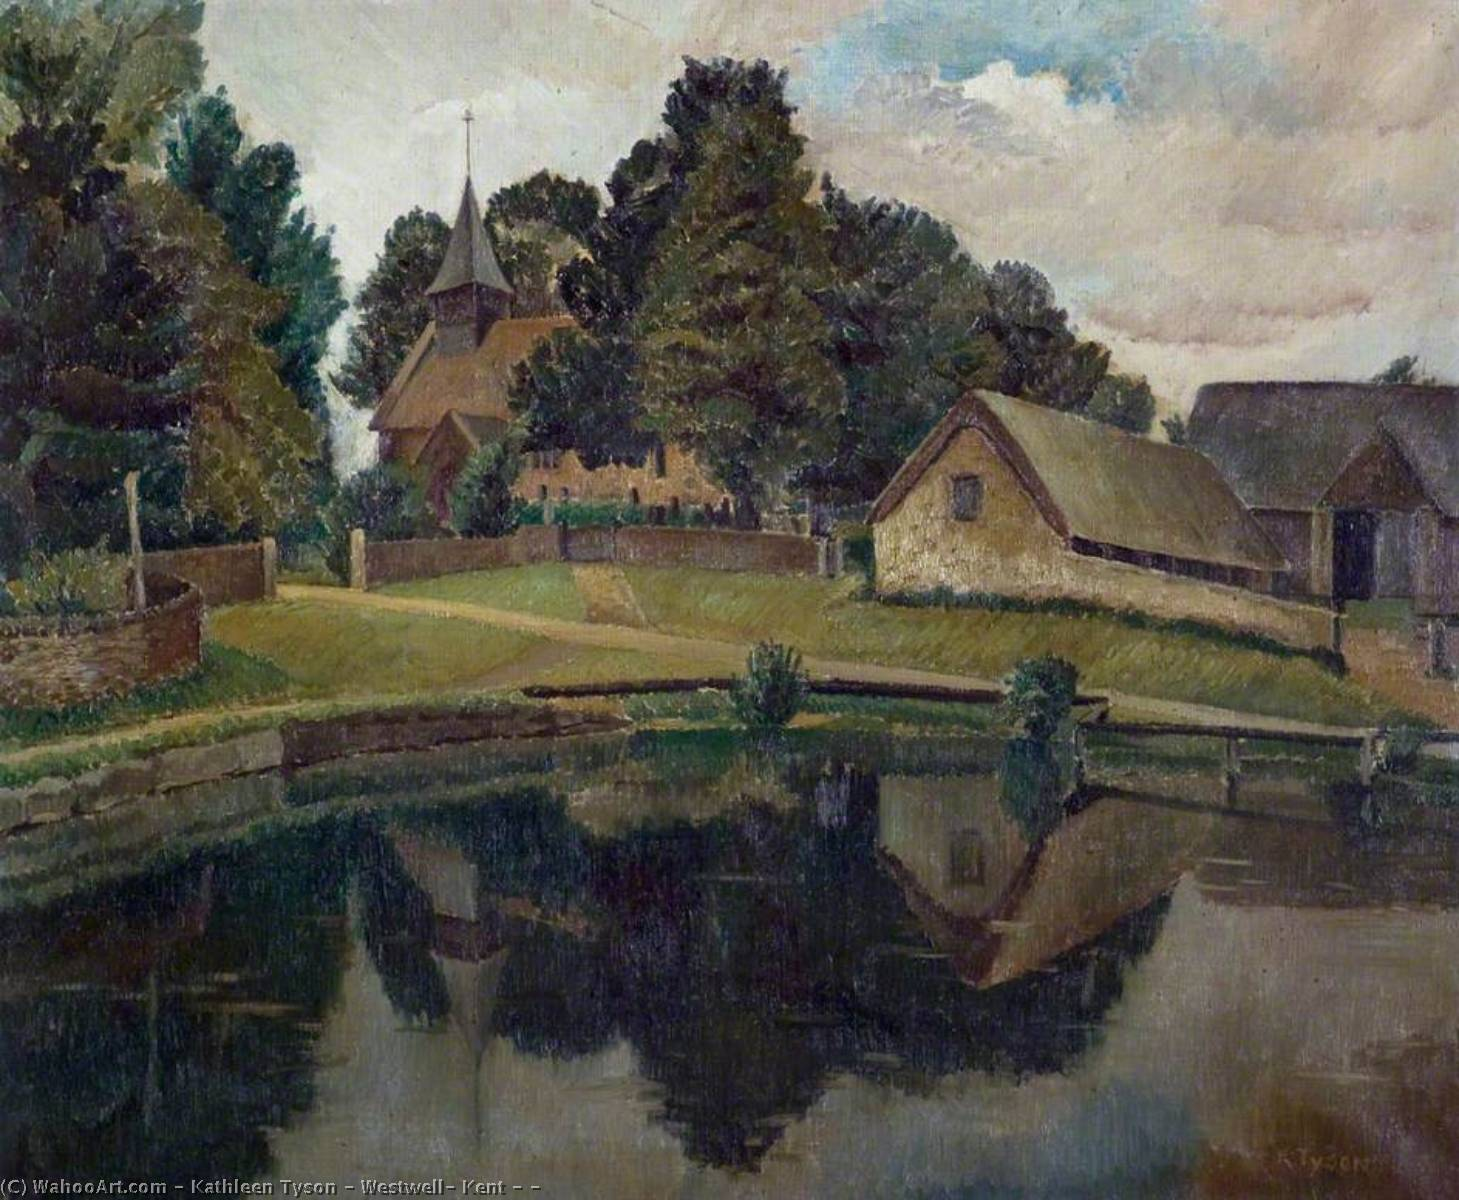 Westwell, Kent ( ) by Kathleen Tyson | Museum Quality Reproductions | WahooArt.com